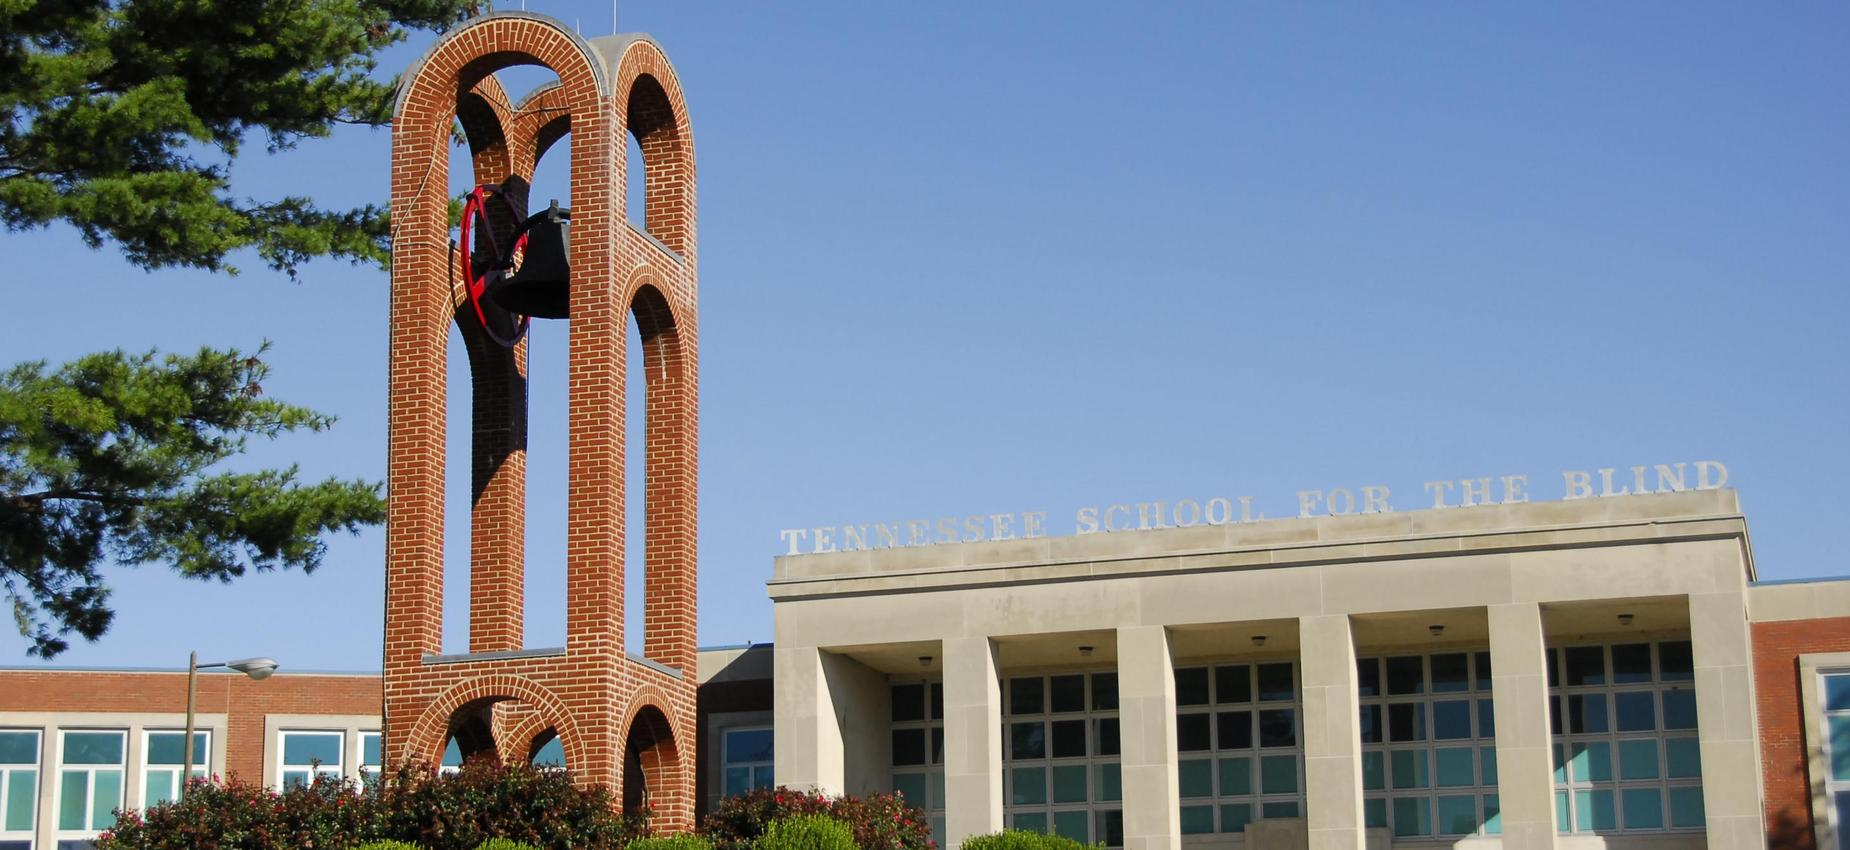 Image of TSB Bell Tower